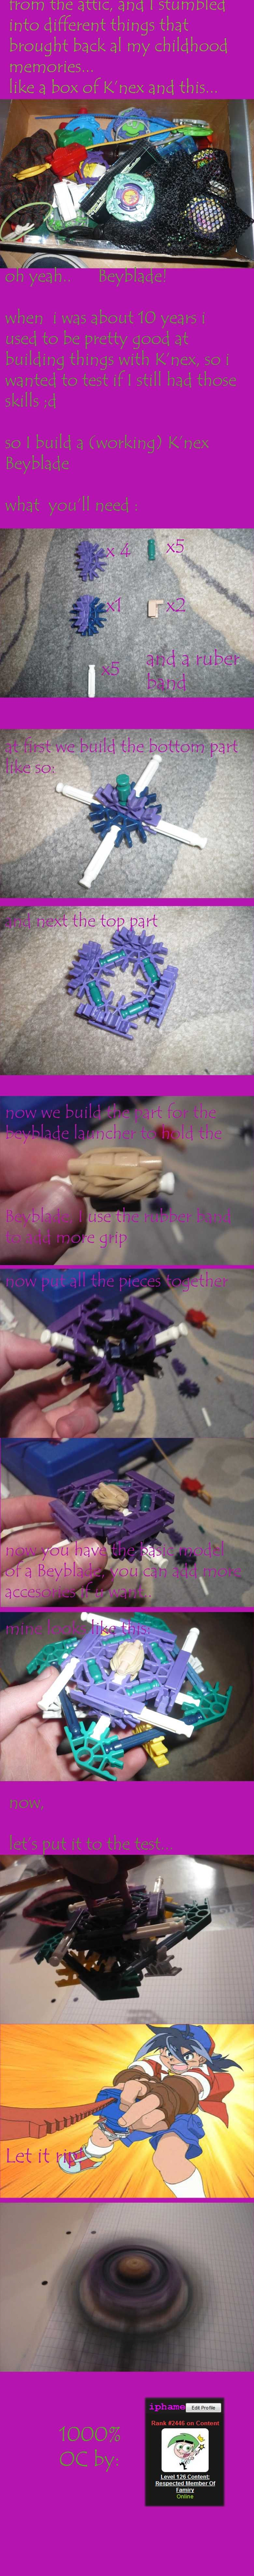 Knex Beyblade READ DESCRIPTION. EDIT: OMG top five already thx guys, lots of love, if you guys want i'll try to make more (usefull) K'nex things ^^, ->tell m